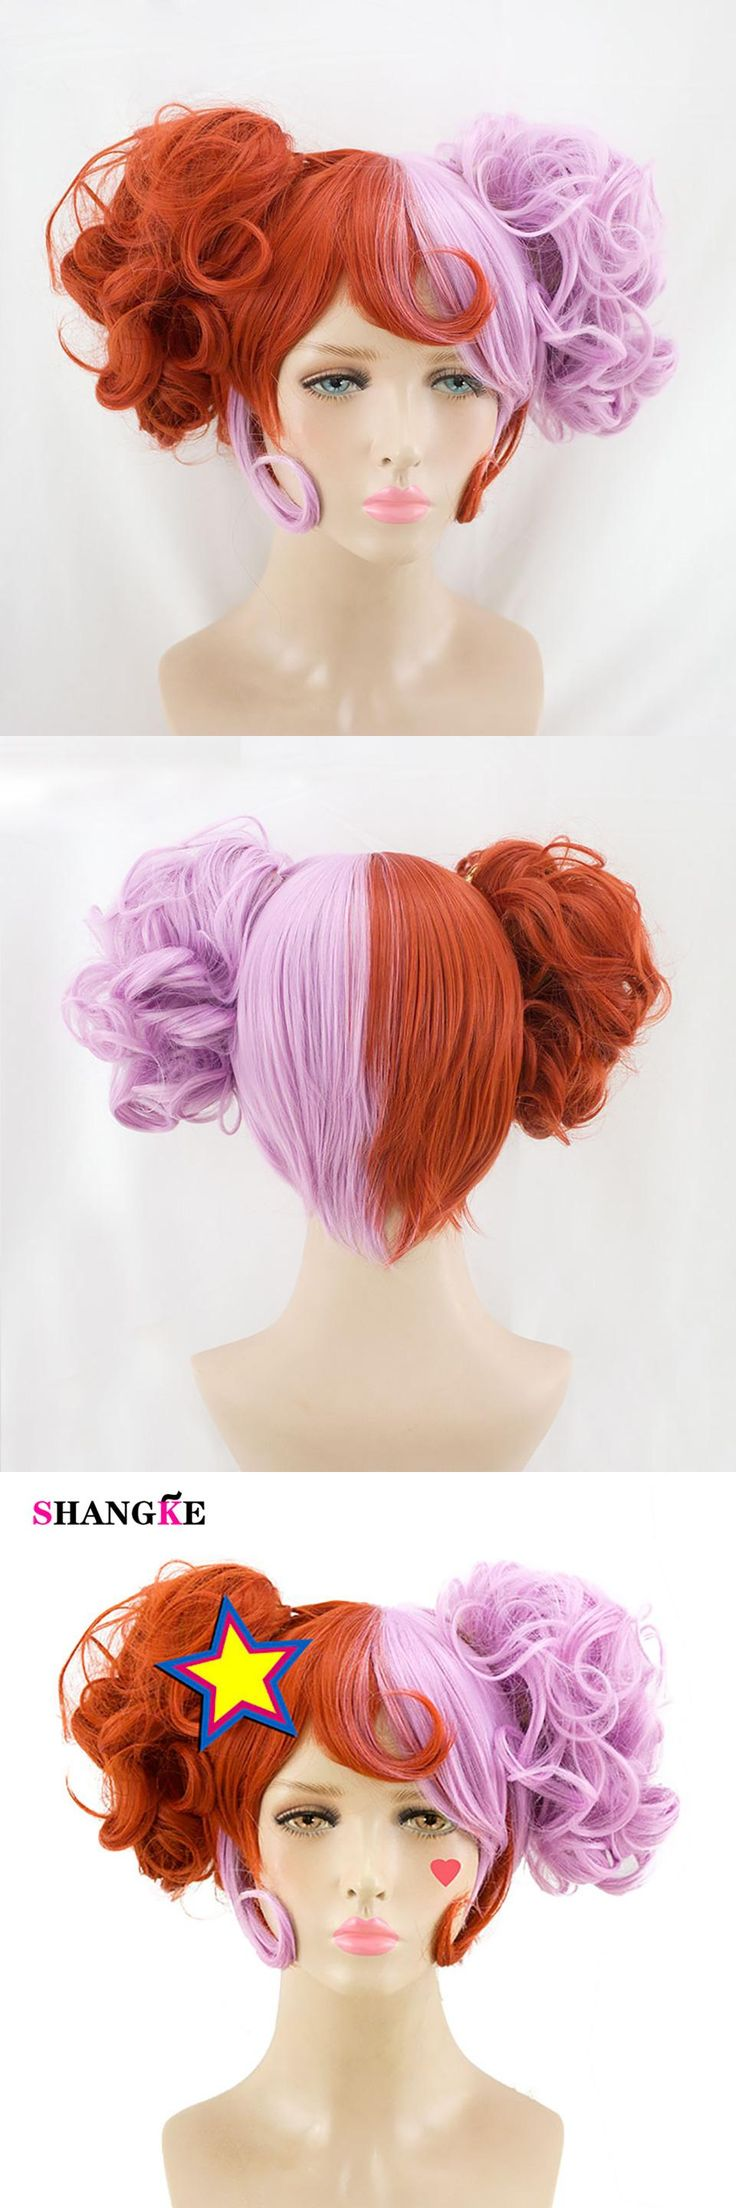 SHANGKE Two-color Wigs Double Ponytail Wigs Synthetic Costumes Hair Halloween Party High Temperature Fiber Cosplay Wig